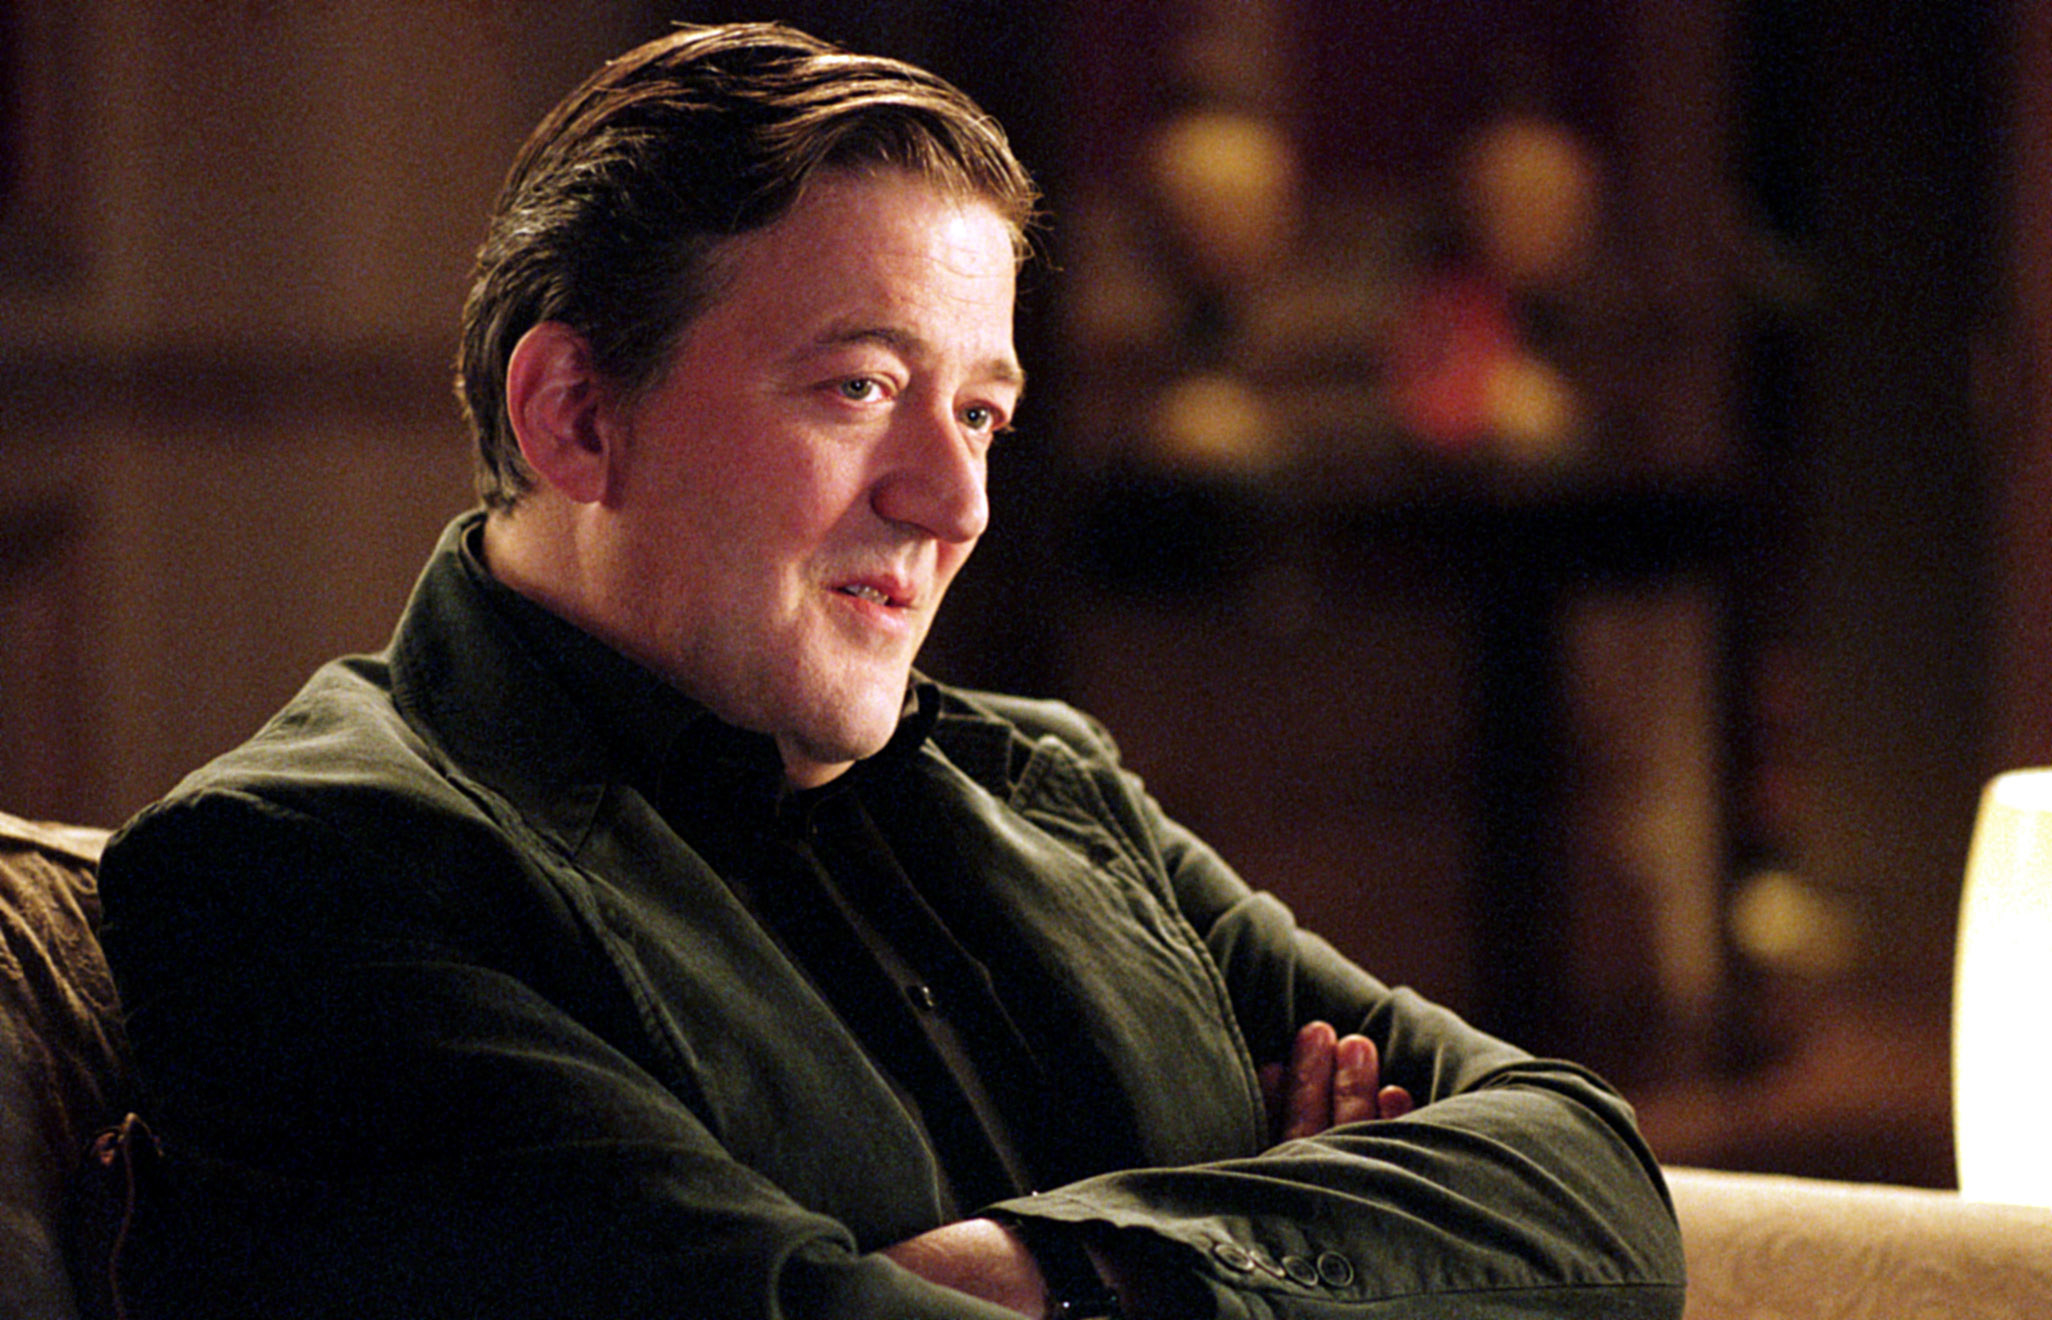 Stephen Fry sits with his arms crossed